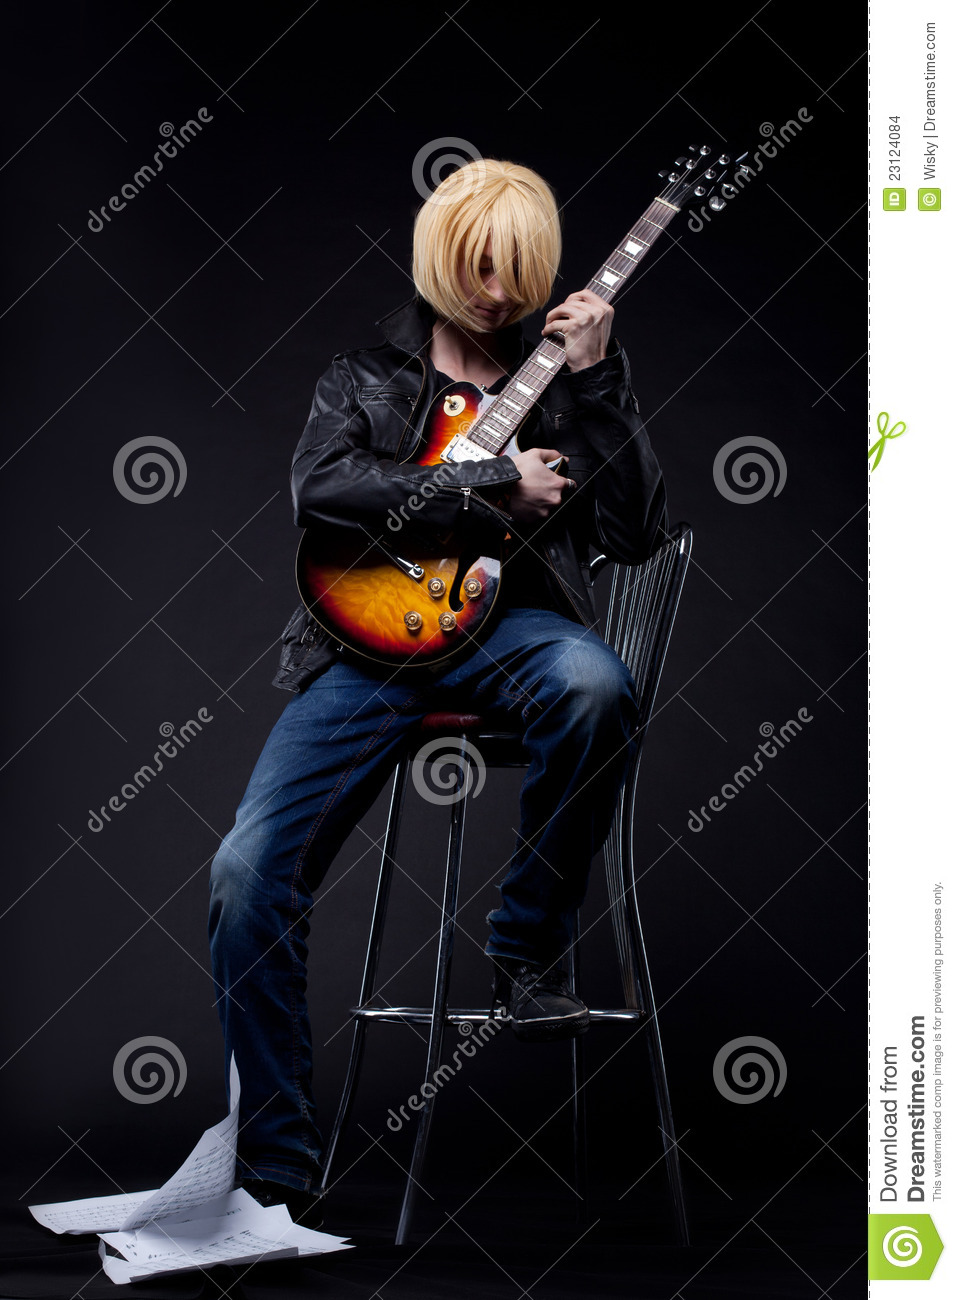 Man Guitar Player Cosplay Anime Character Stock Images